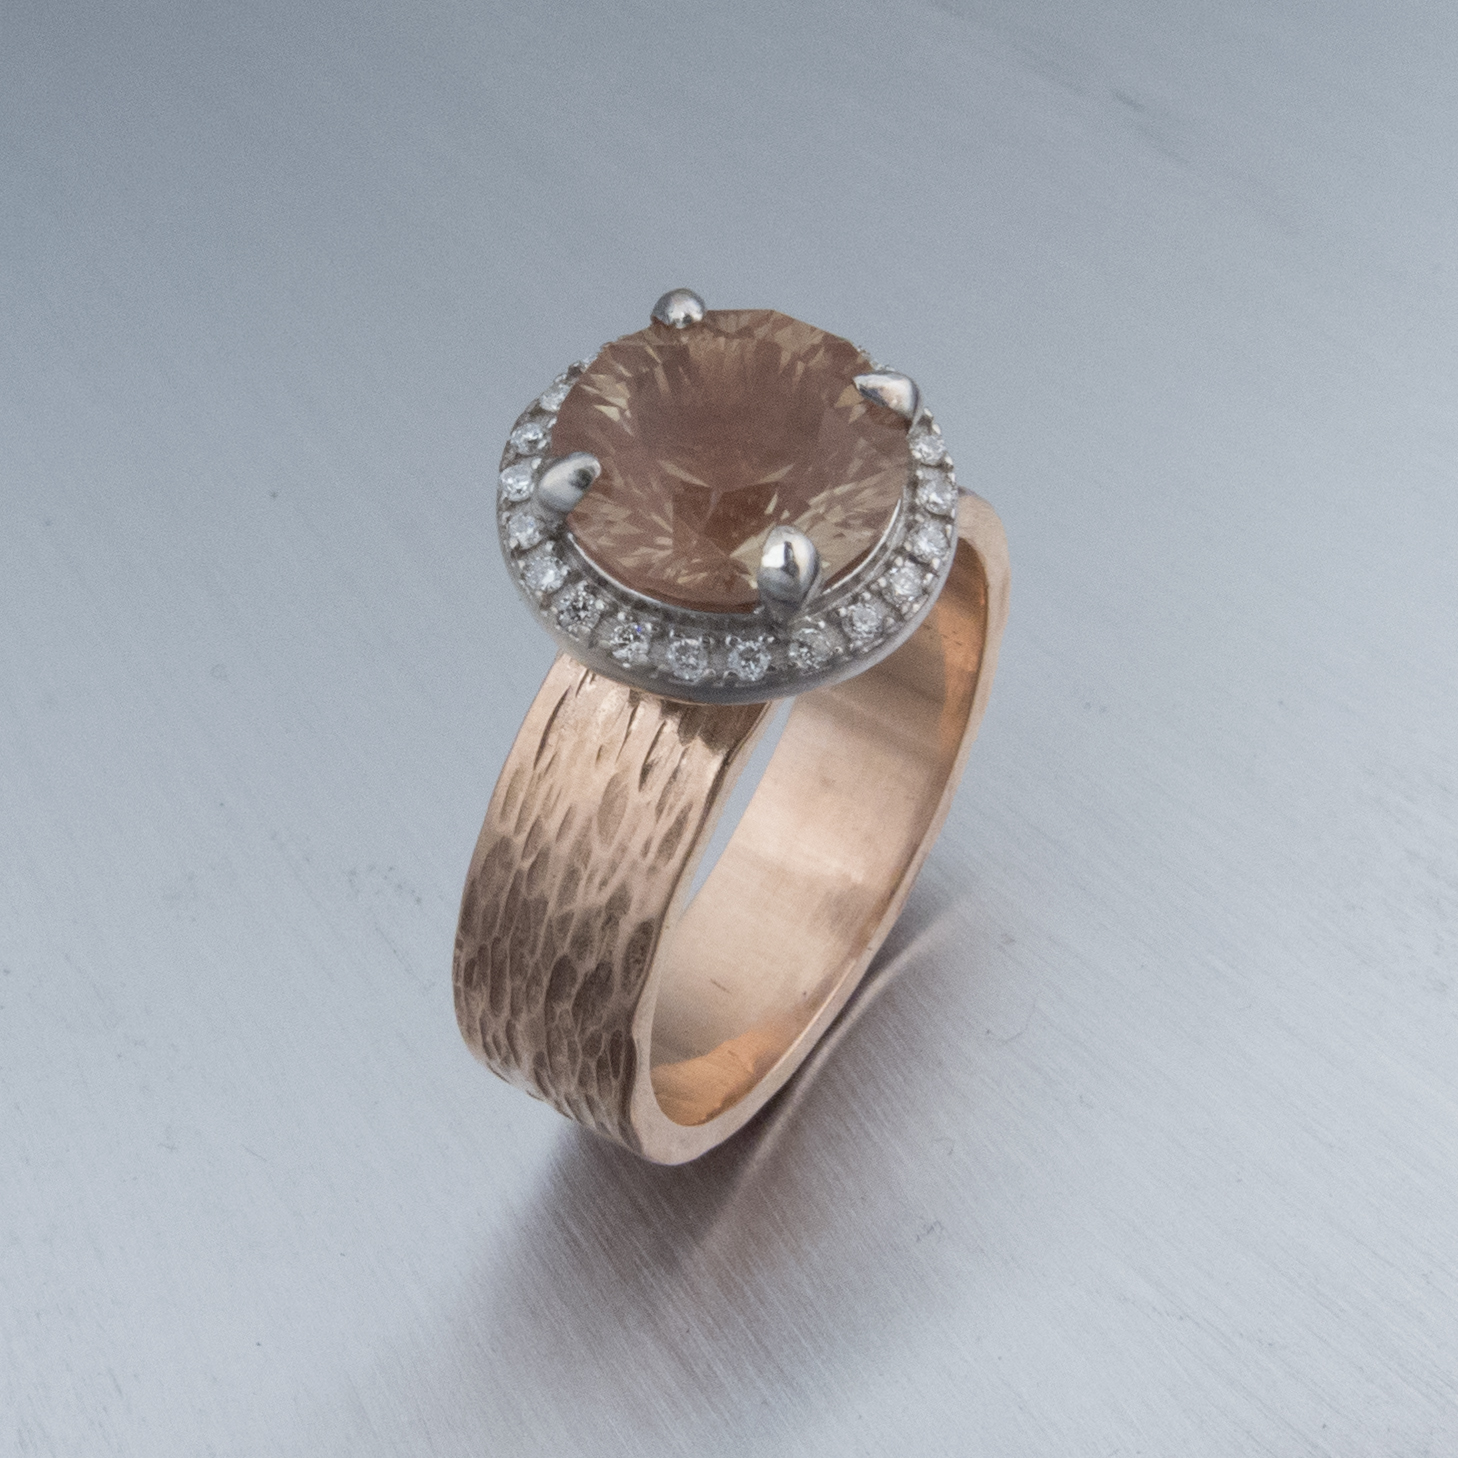 rings available rosados rosado oval diamonds stone sun sunstone request and s ring romani white halo center oregon cushion engagement box upon gold other